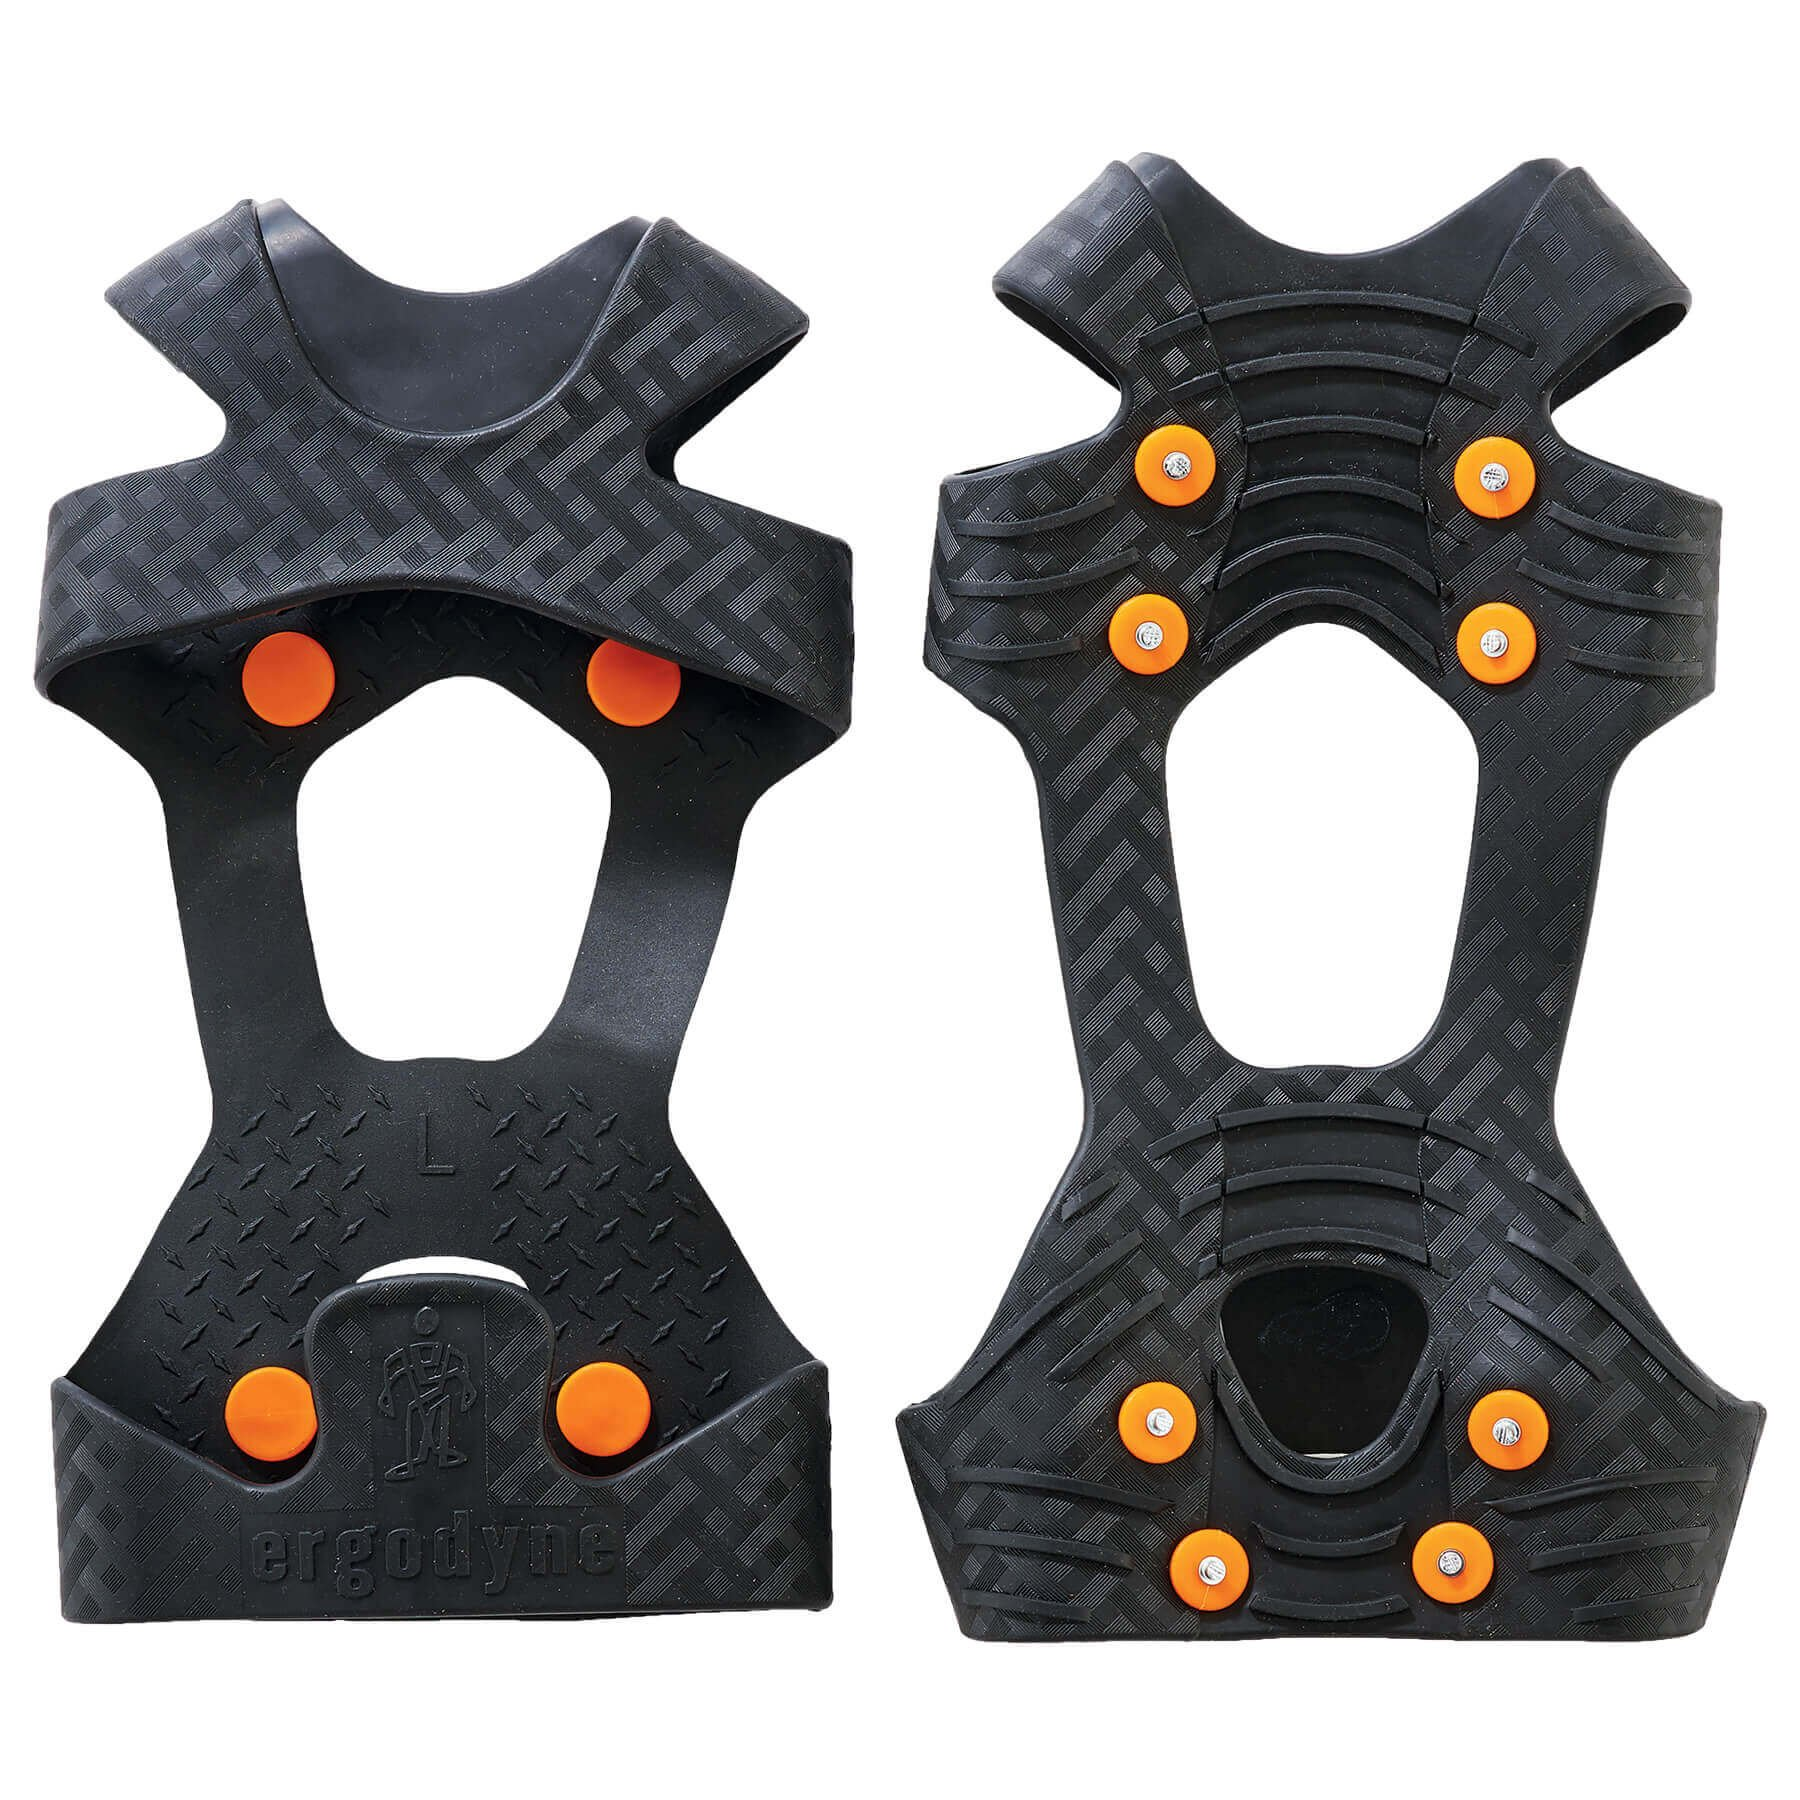 Ergodyne TREX 6300 Traction Cleat Grips Ice and Snow, One-Piece Easily Attaches Over Shoe/Boot with Carbon Steel Spikes to Provide Anti-Slip Solution, Large